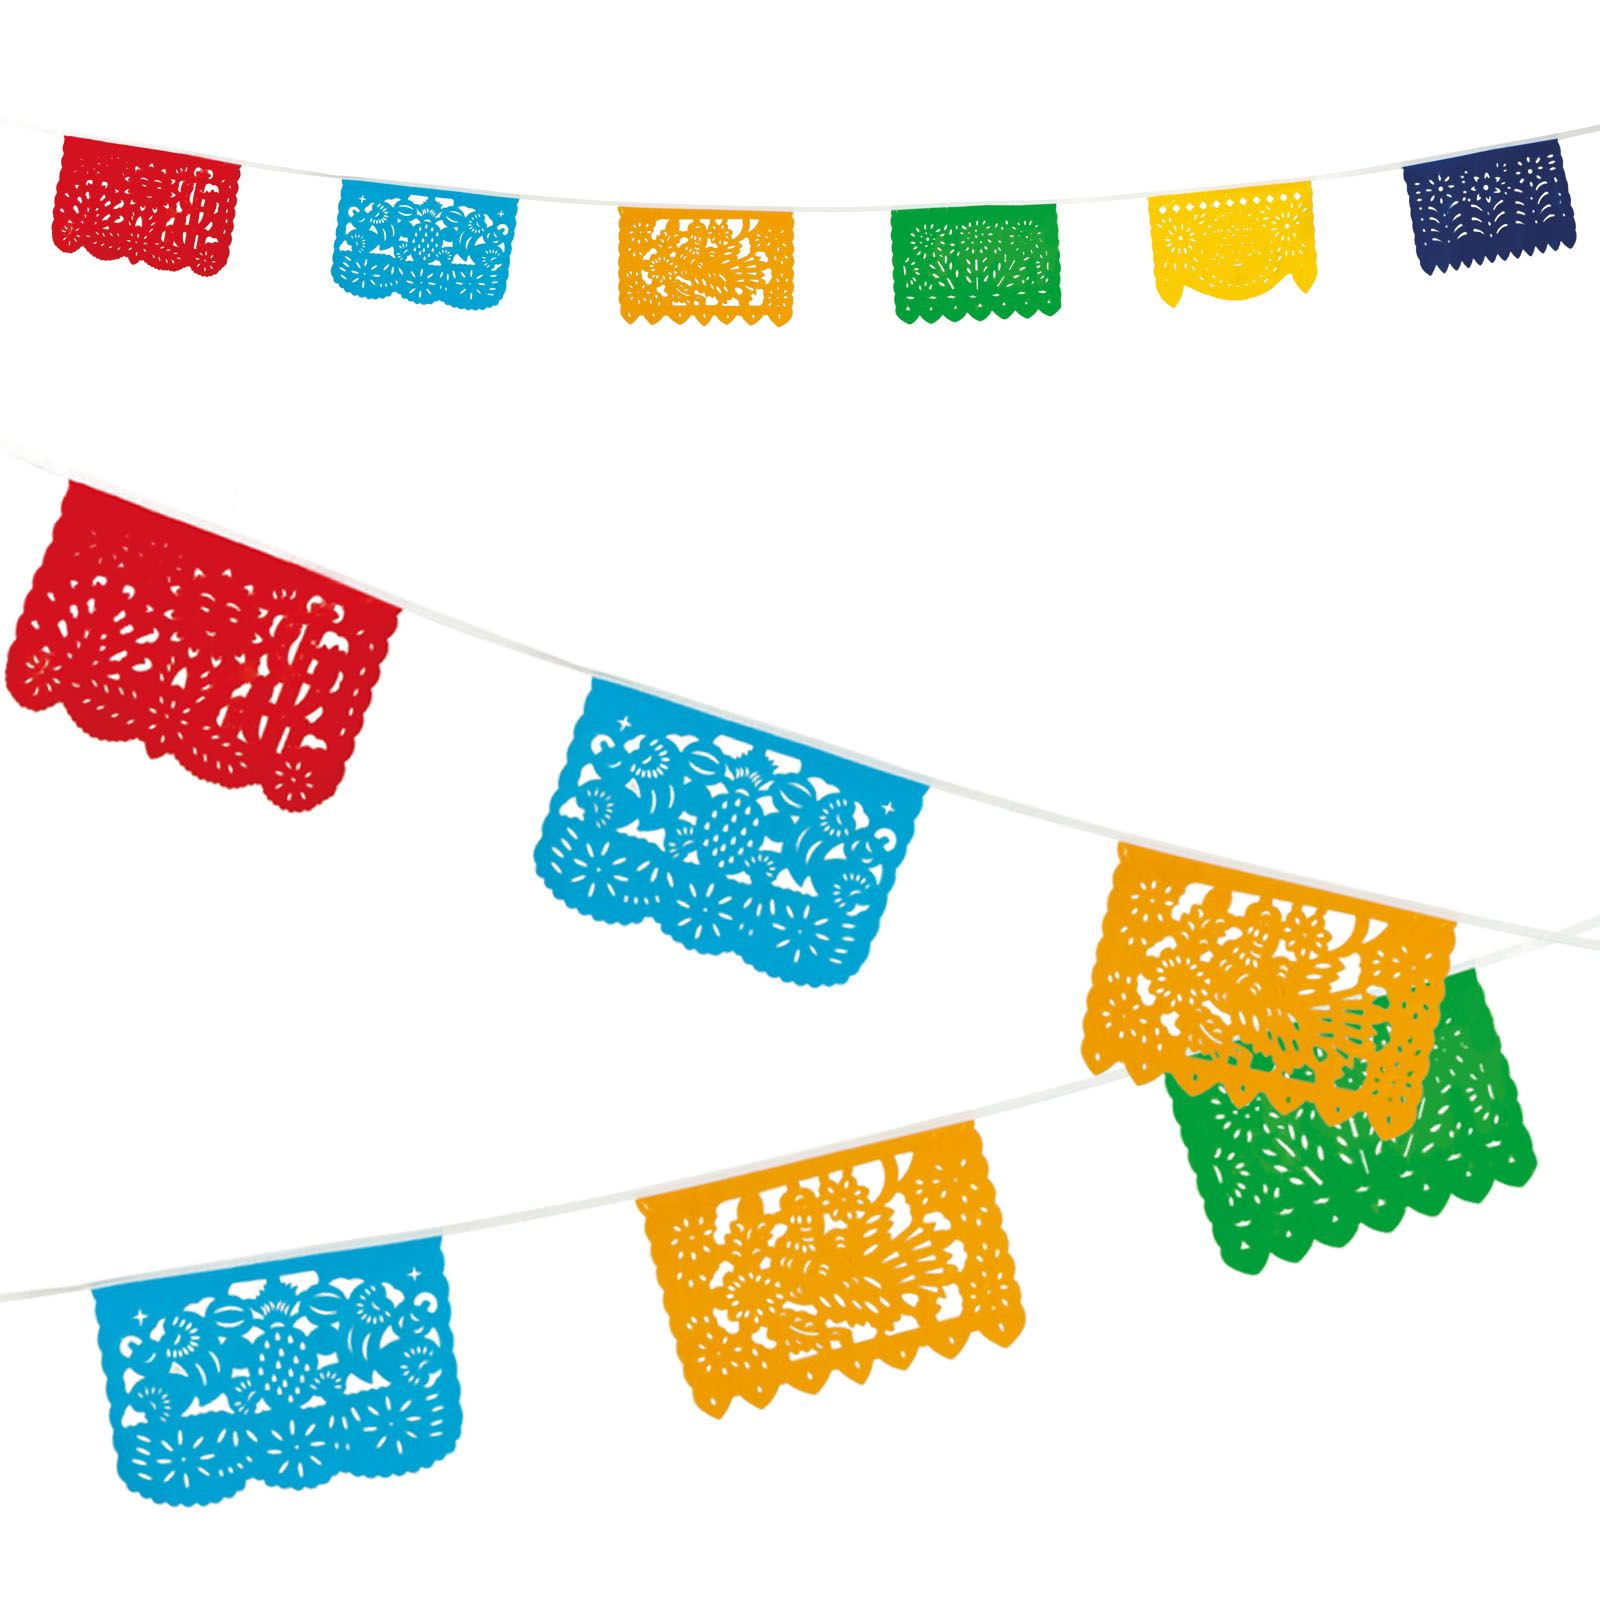 Pennant clipart flag party mexican. Wild west fiesta hanging